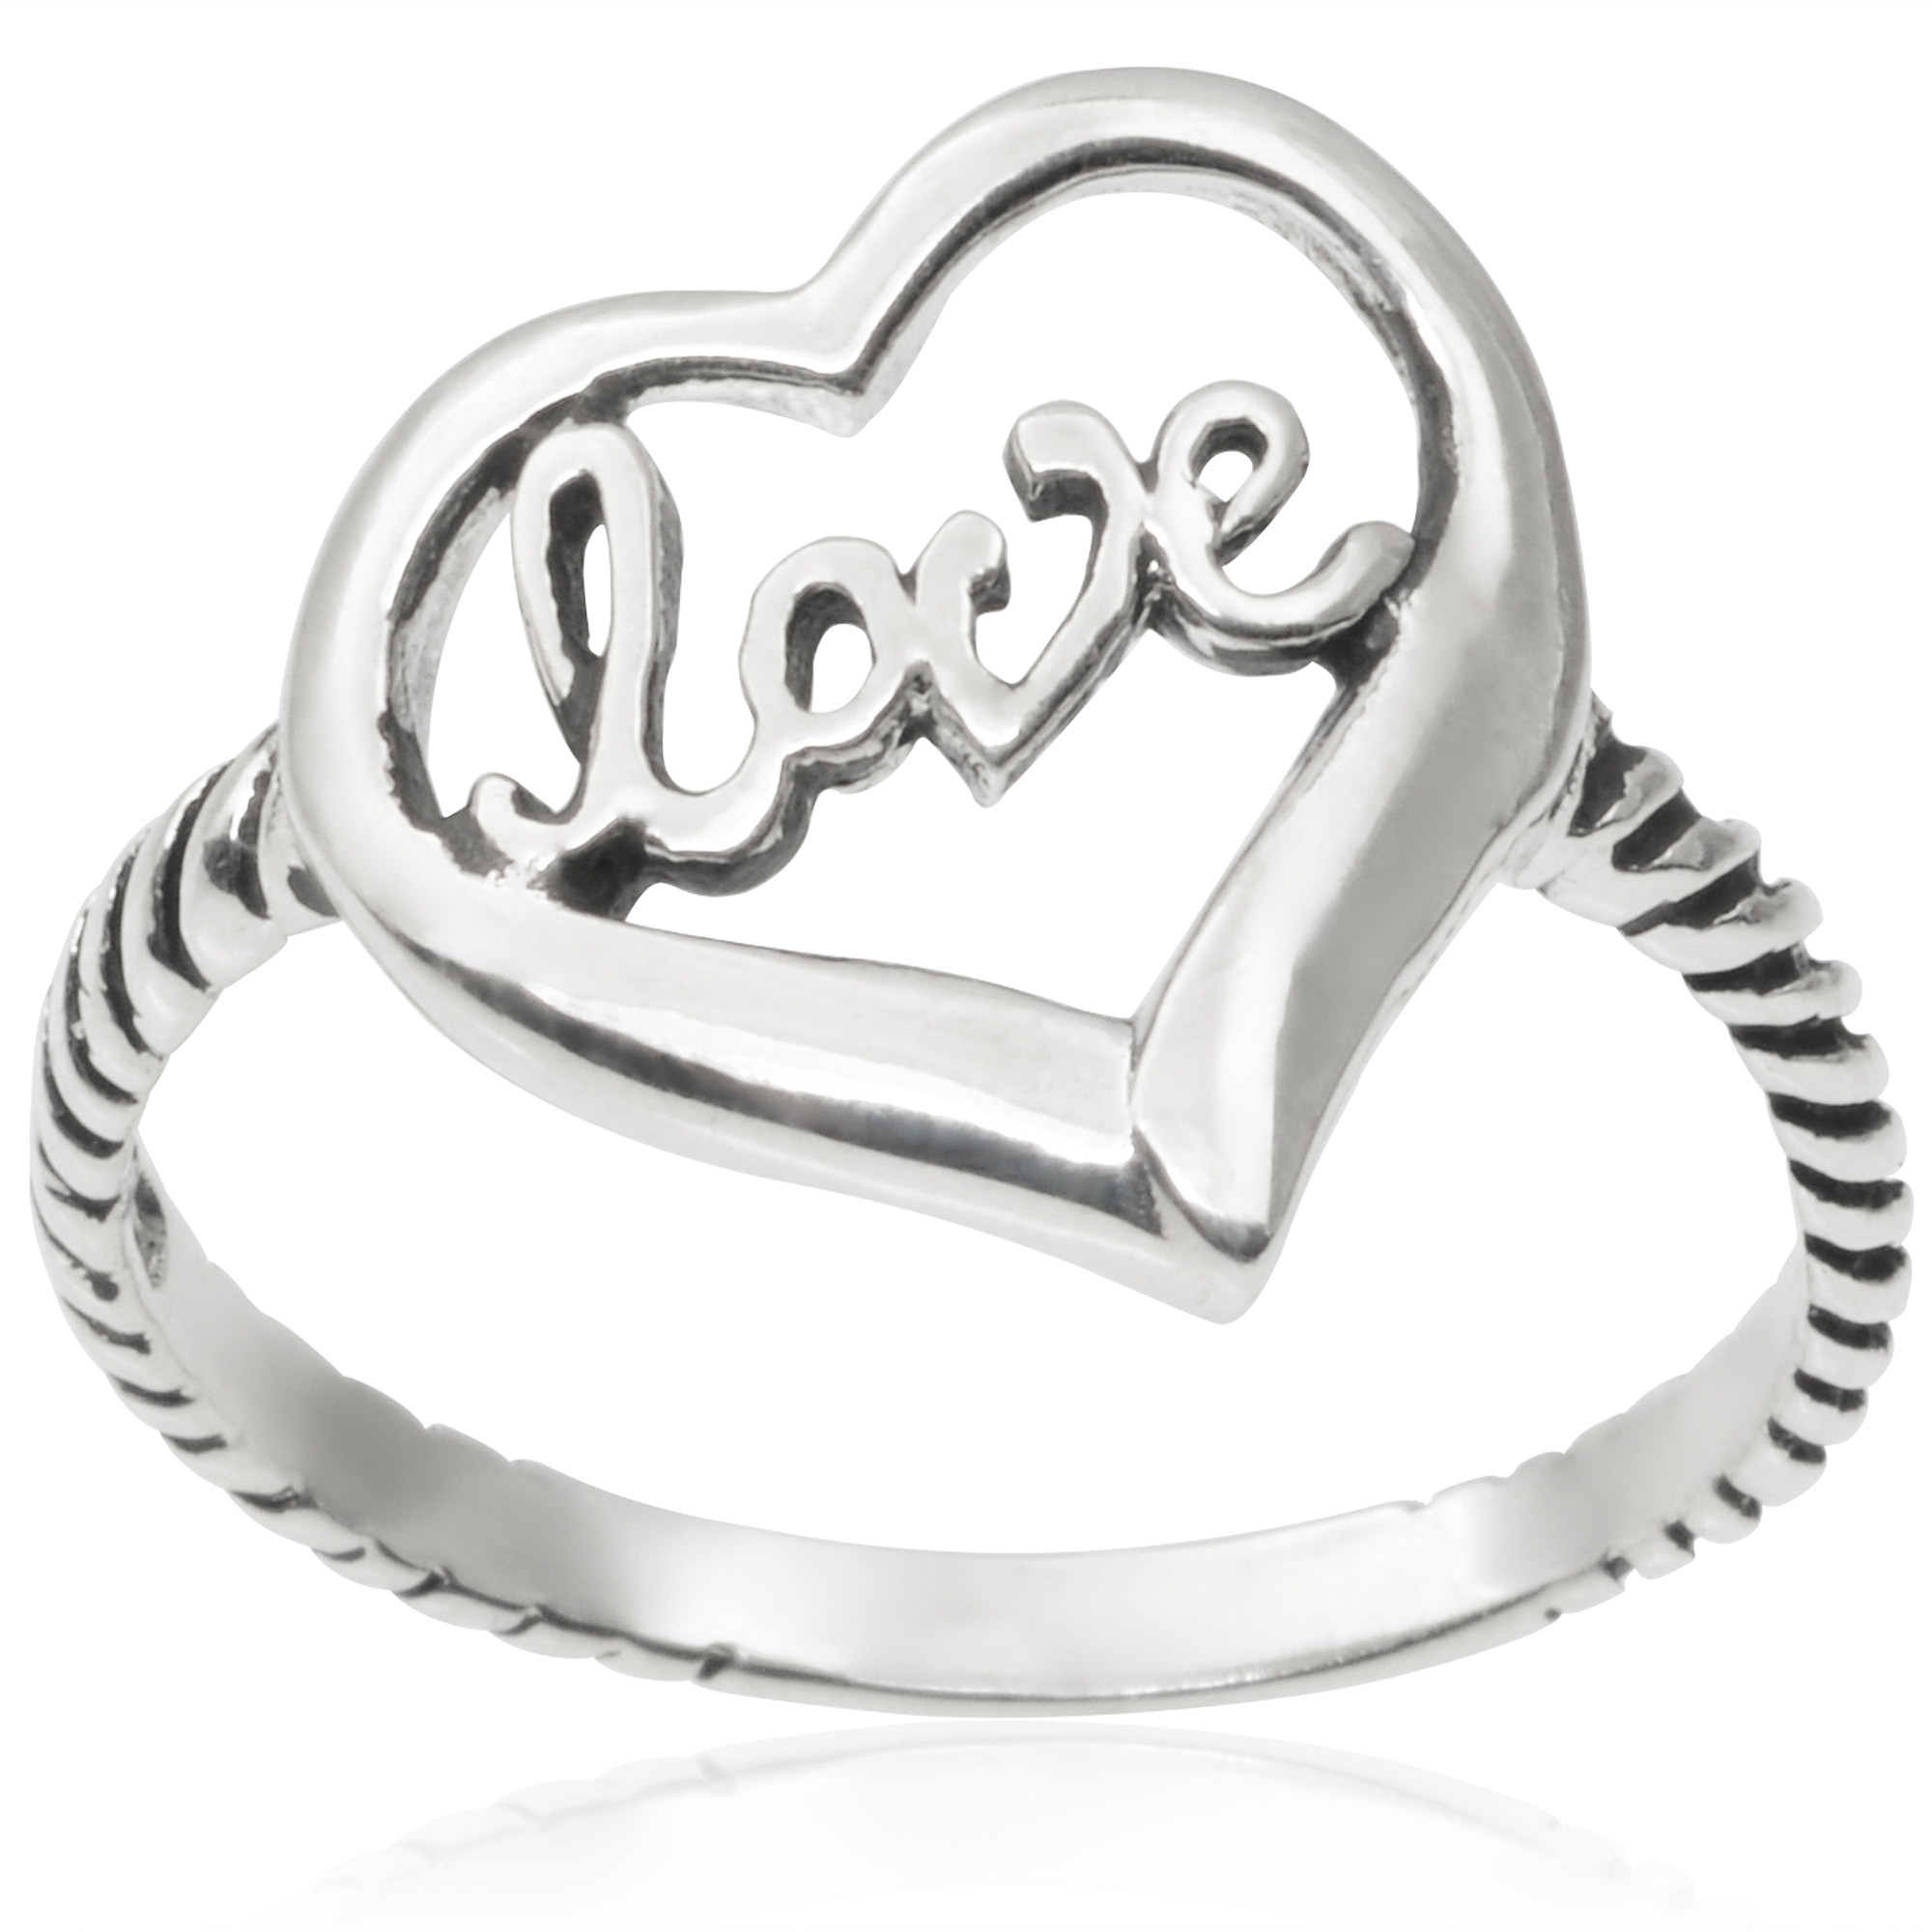 Brinley Co. Sterling Silver Love Ring